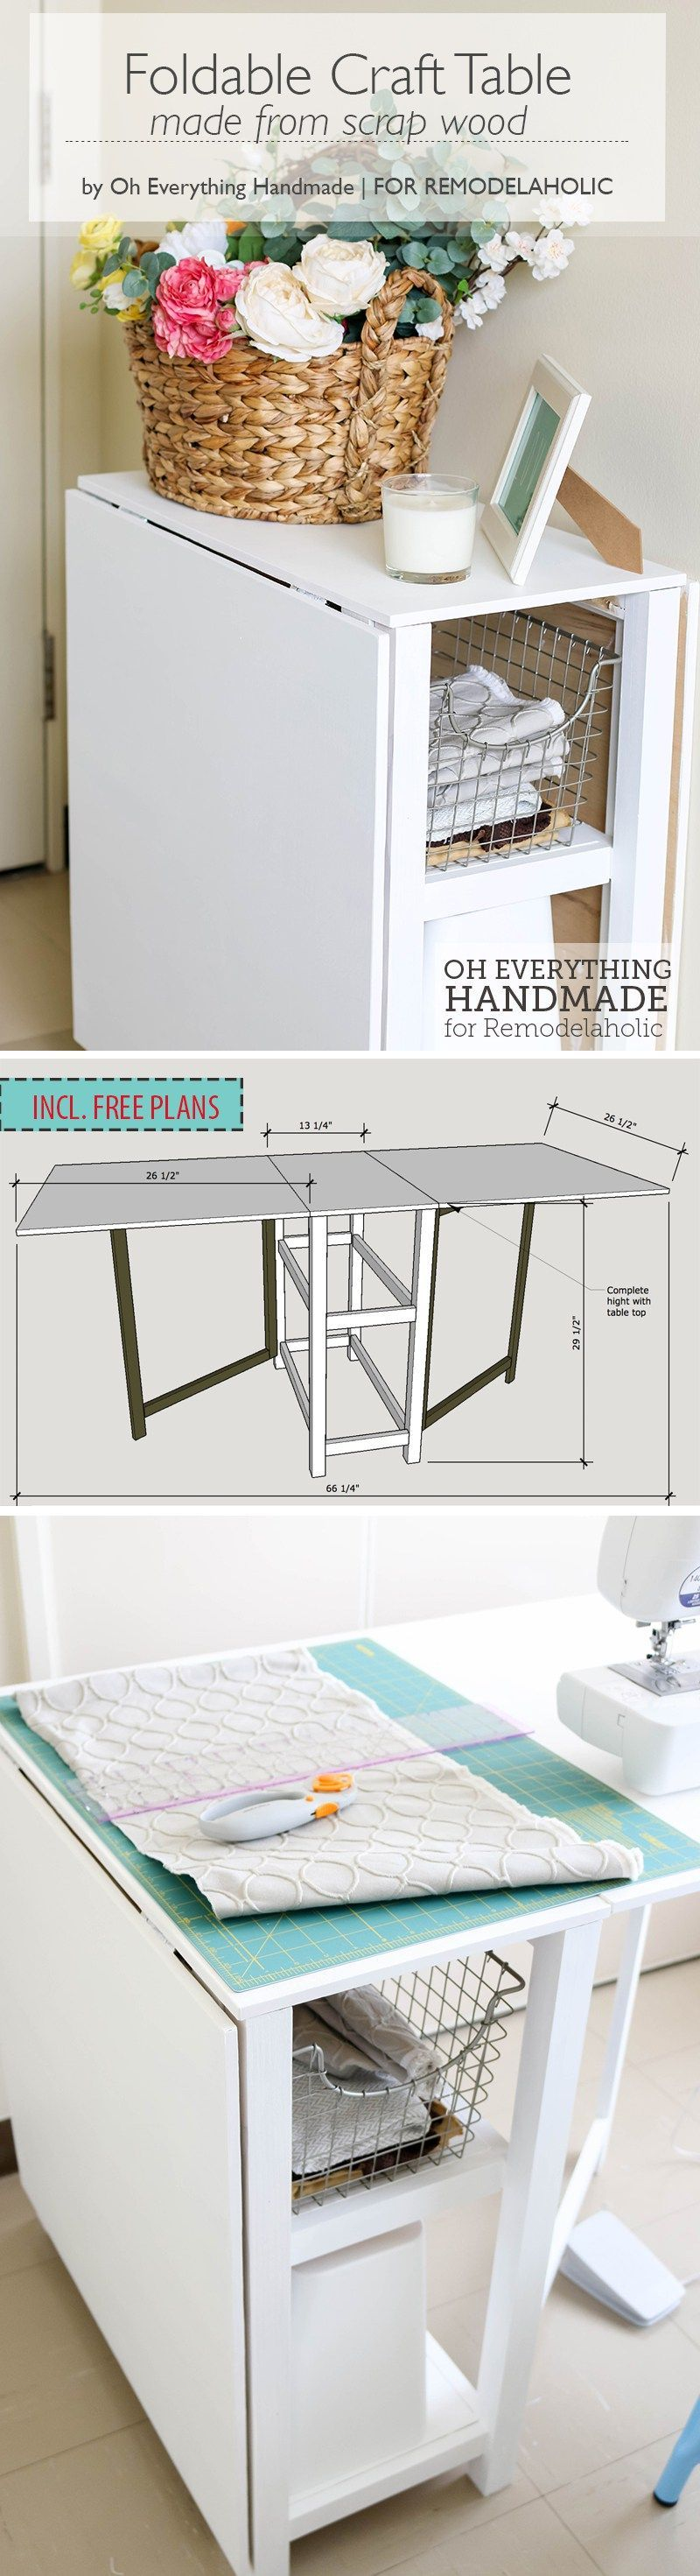 craft room ideas bedford collection. Make Your Small Craft Area Work With This Space-conscious DIY Foldable Table, Room Ideas Bedford Collection